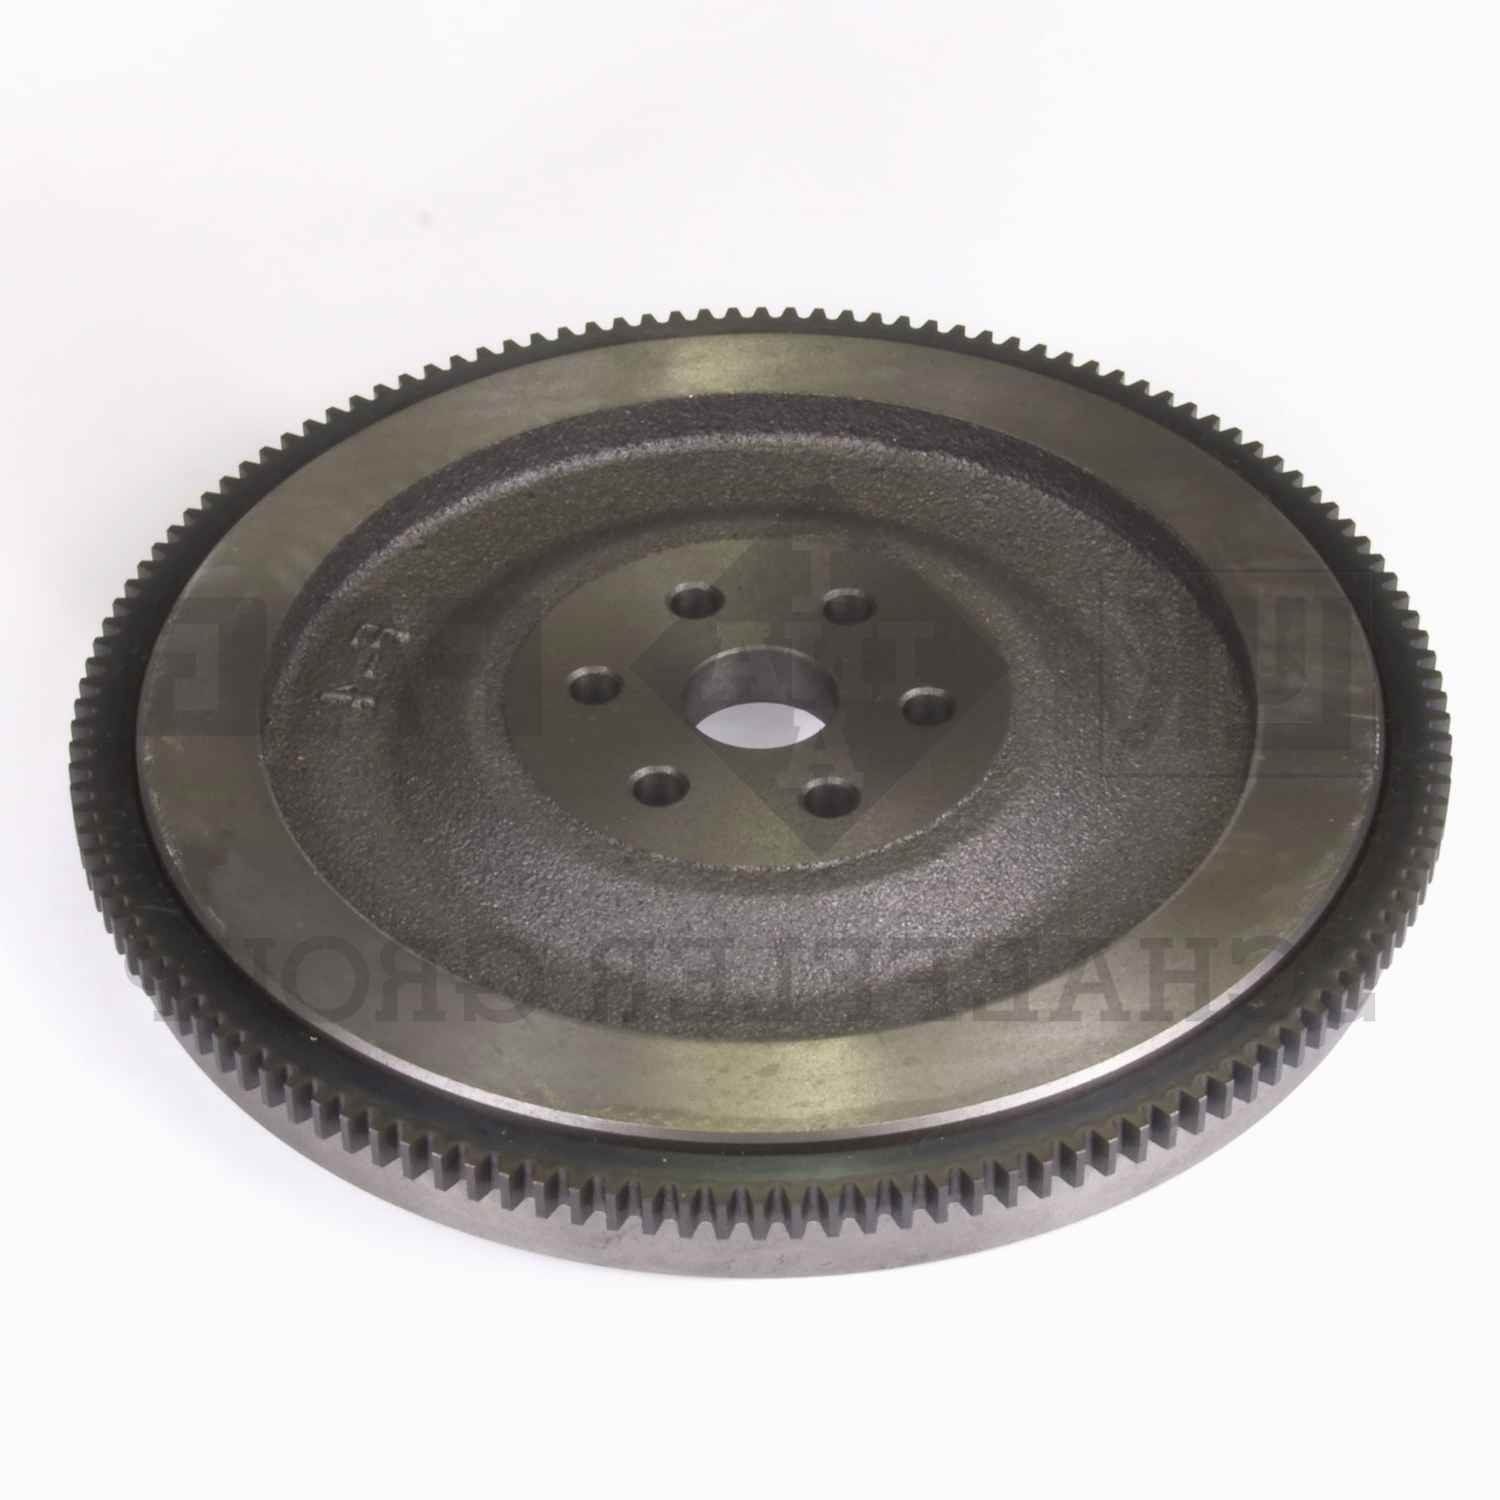 Flywheel Clutch Diagram New ford Ranger Clutch Of Flywheel Clutch Diagram New ford Ranger Clutch